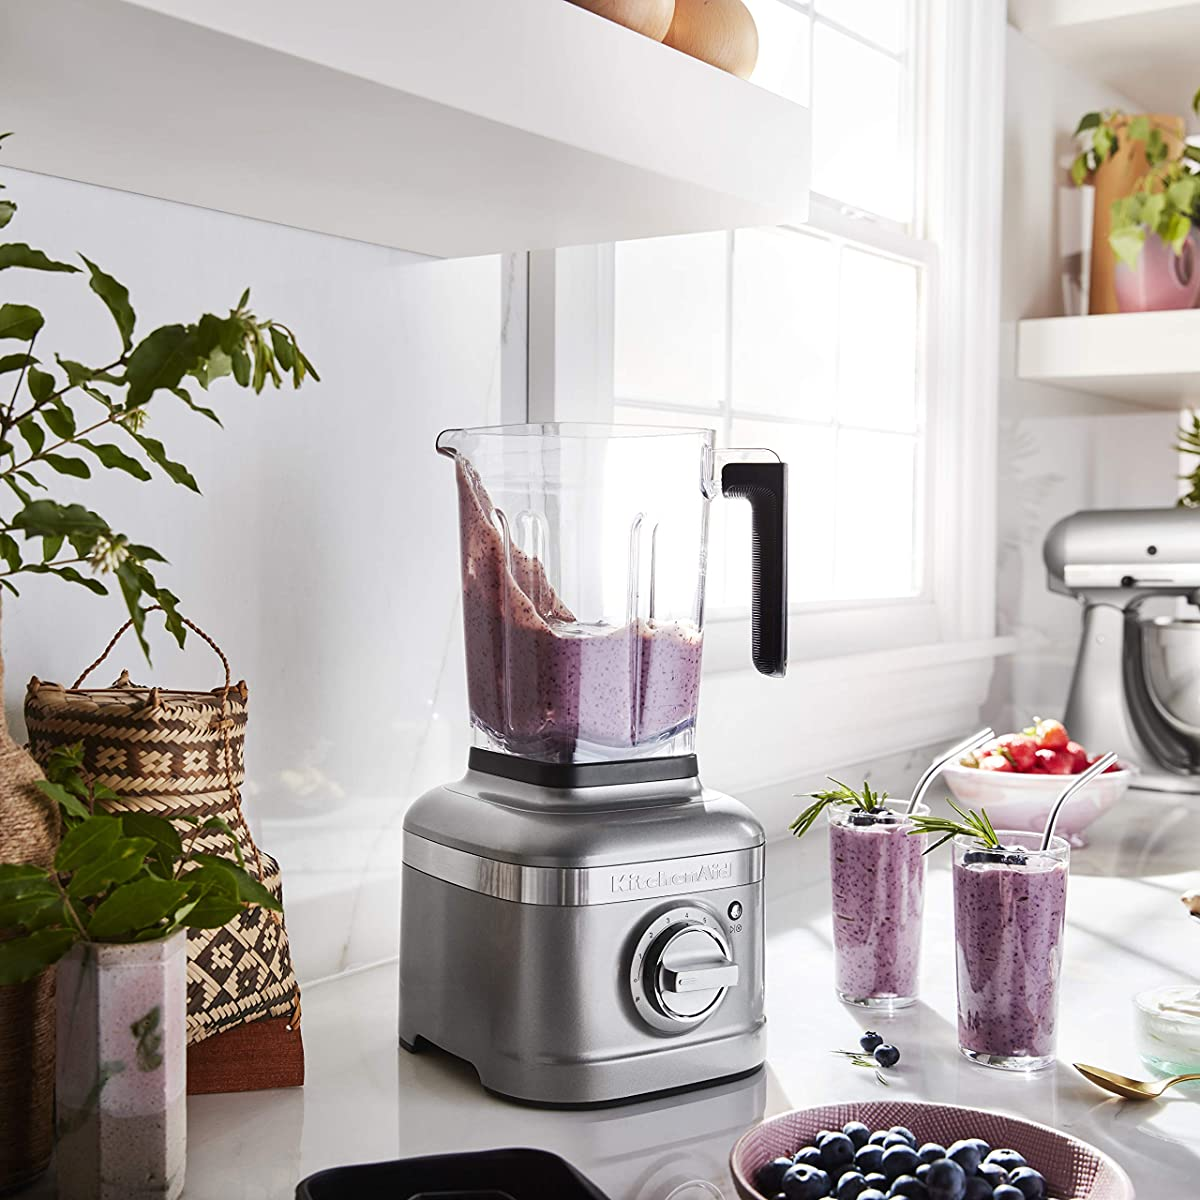 Best Personal Smoothie Blender of 2021